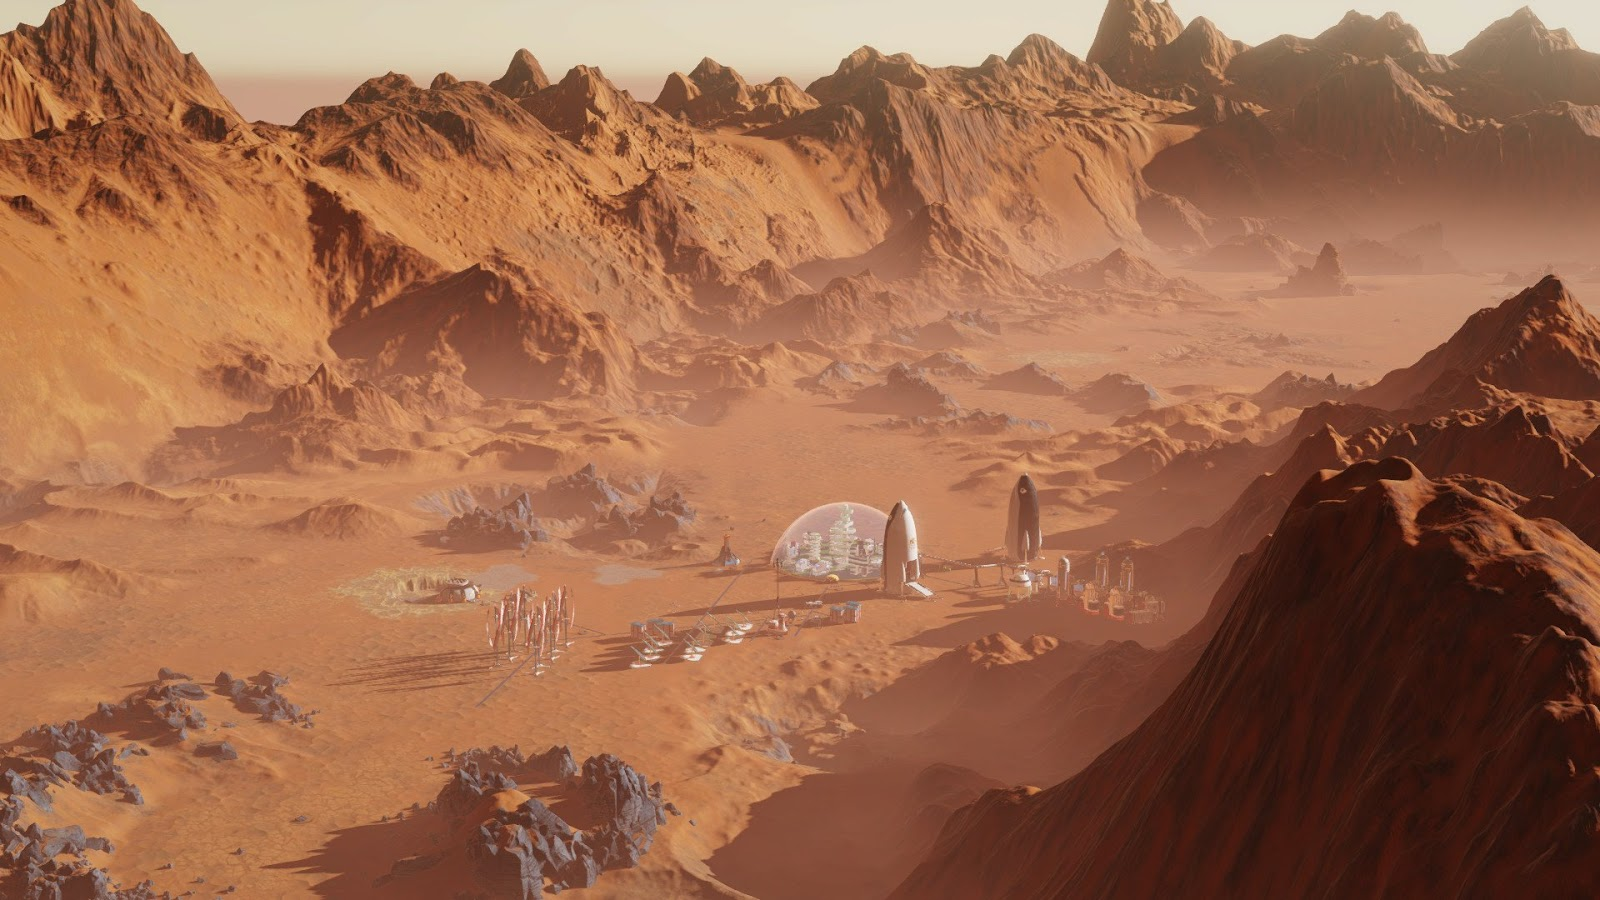 Human colony in a Martian canyon from Surviving Mars game